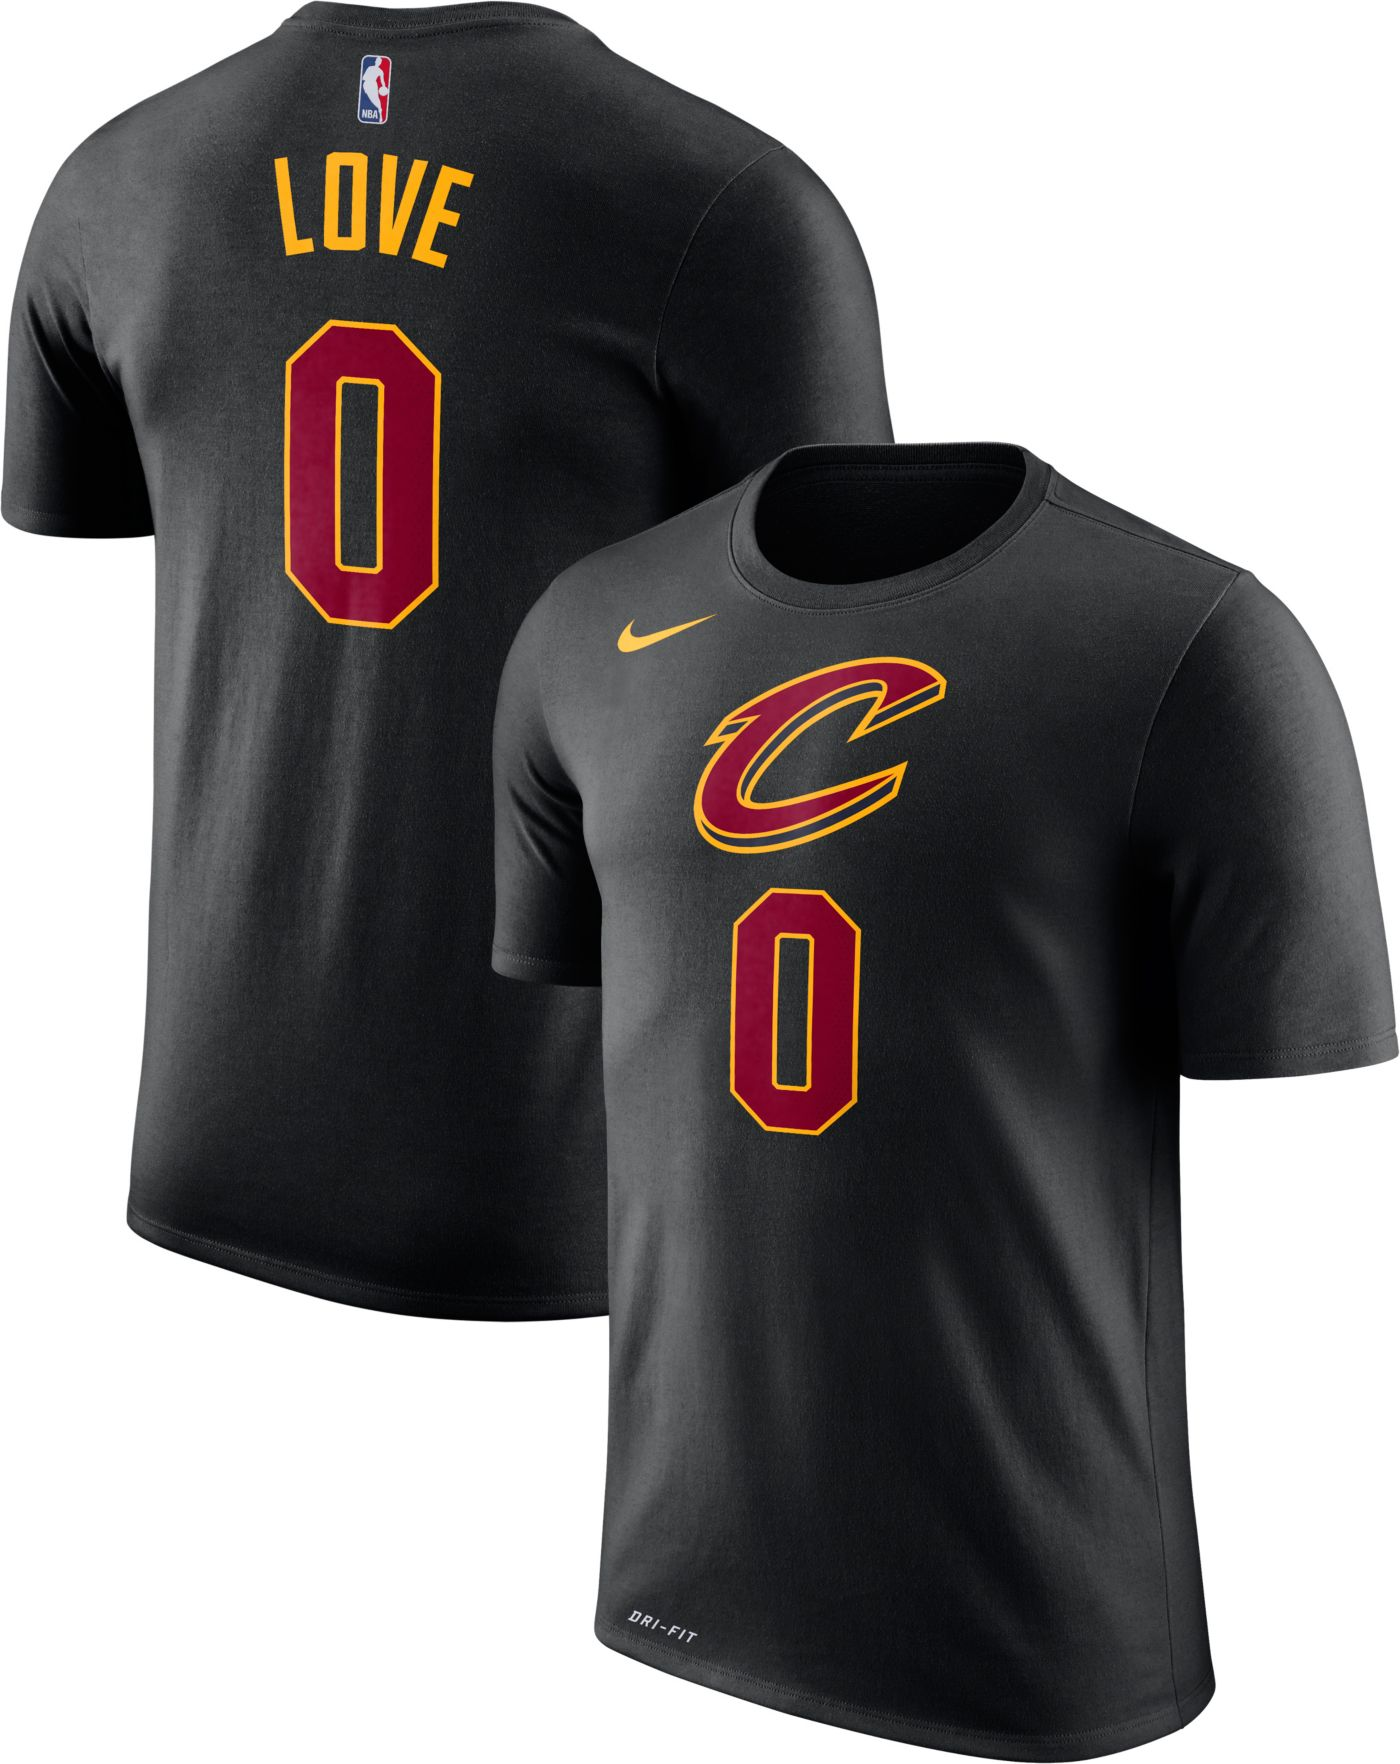 Nike Youth Cleveland Cavaliers Kevin Love #0 Dri-FIT Statement Black T-Shirt